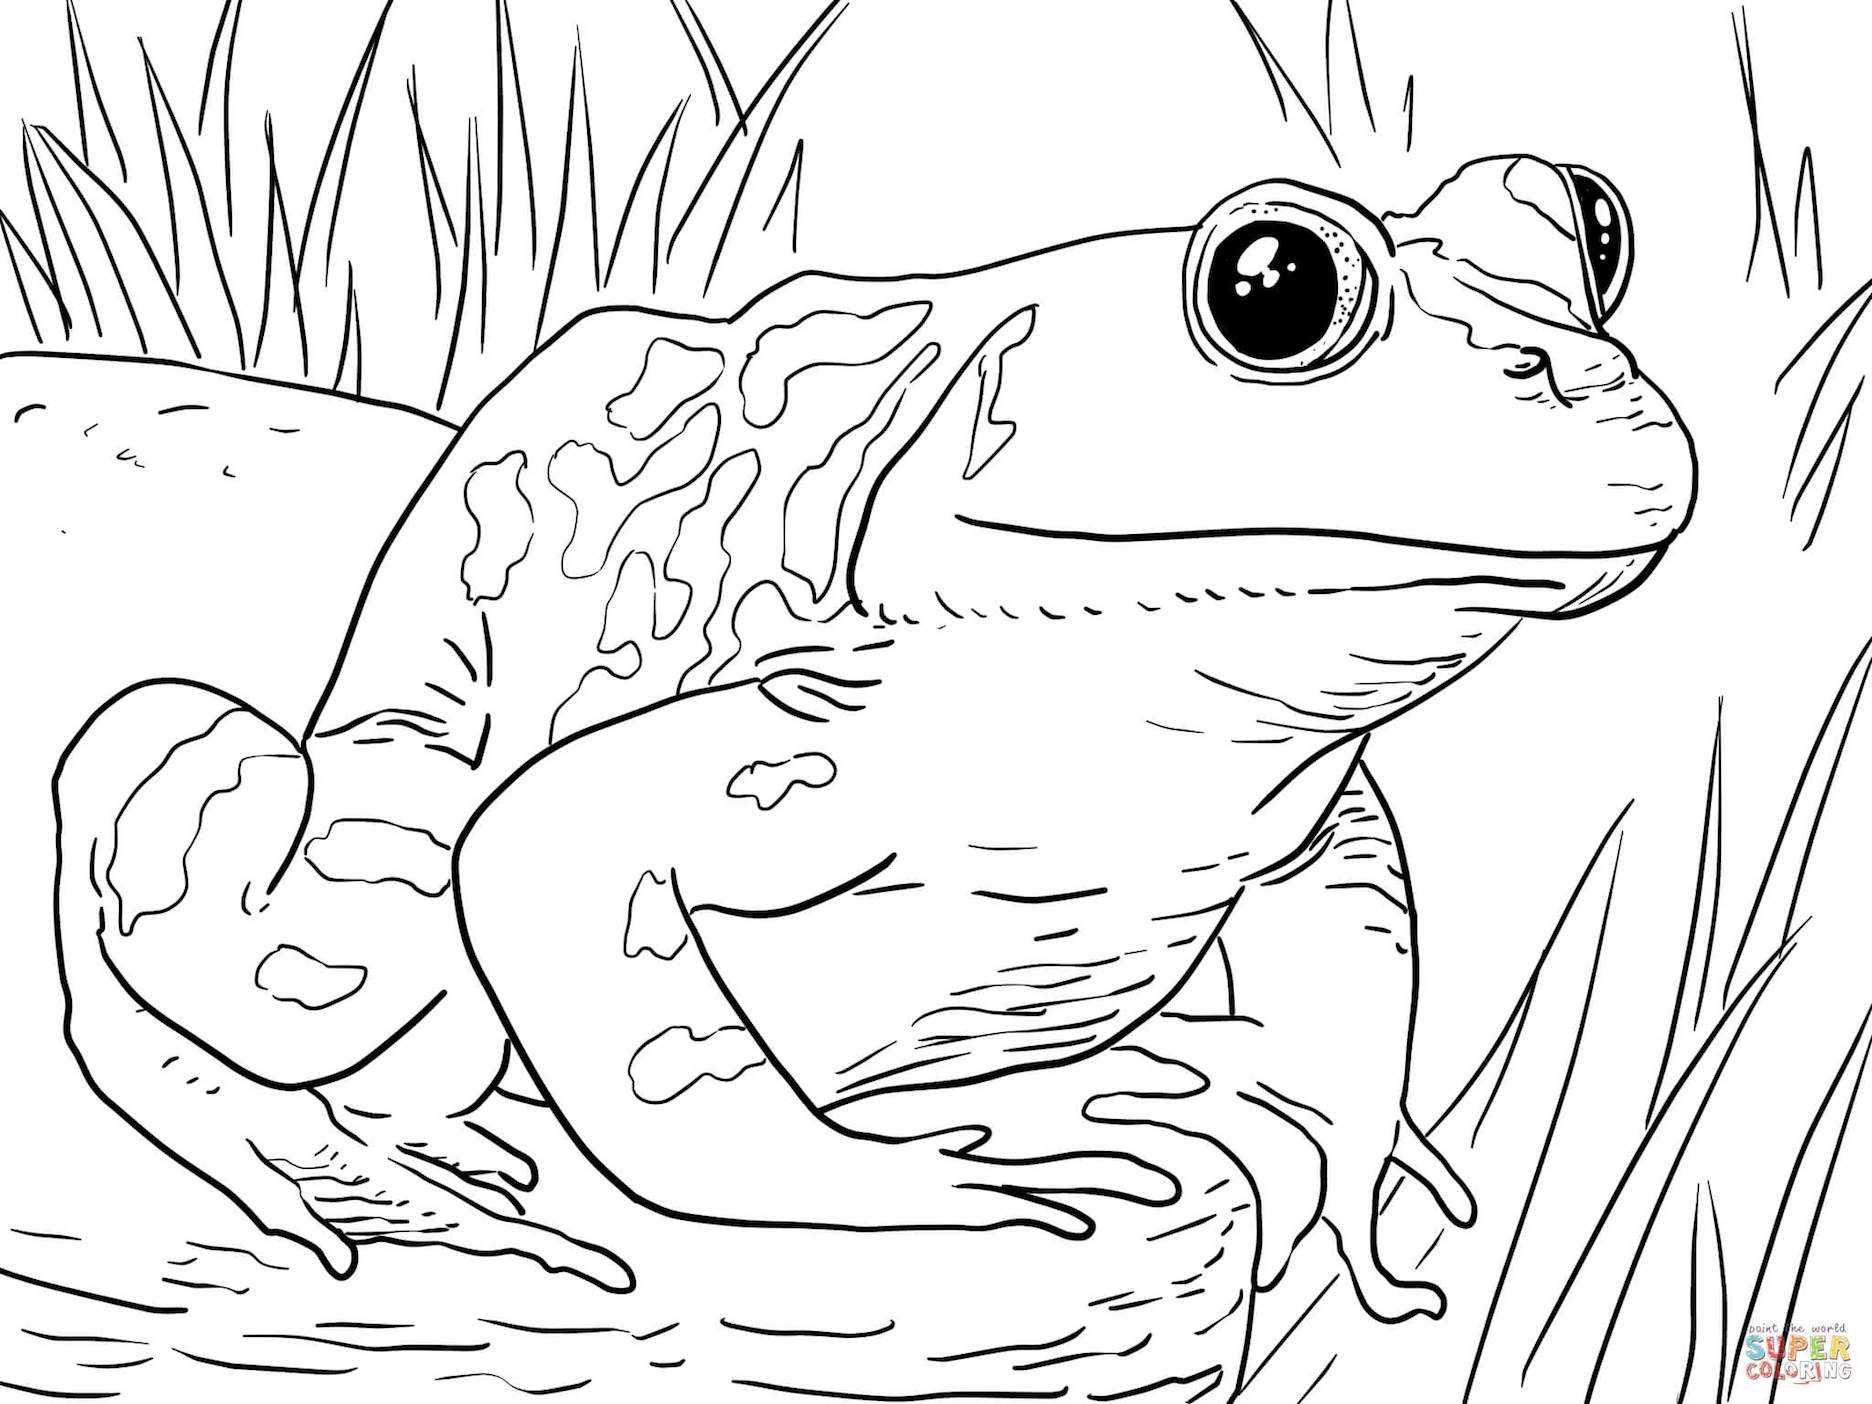 frog coloring sheets print download frog coloring pages theme for kids coloring sheets frog 1 1